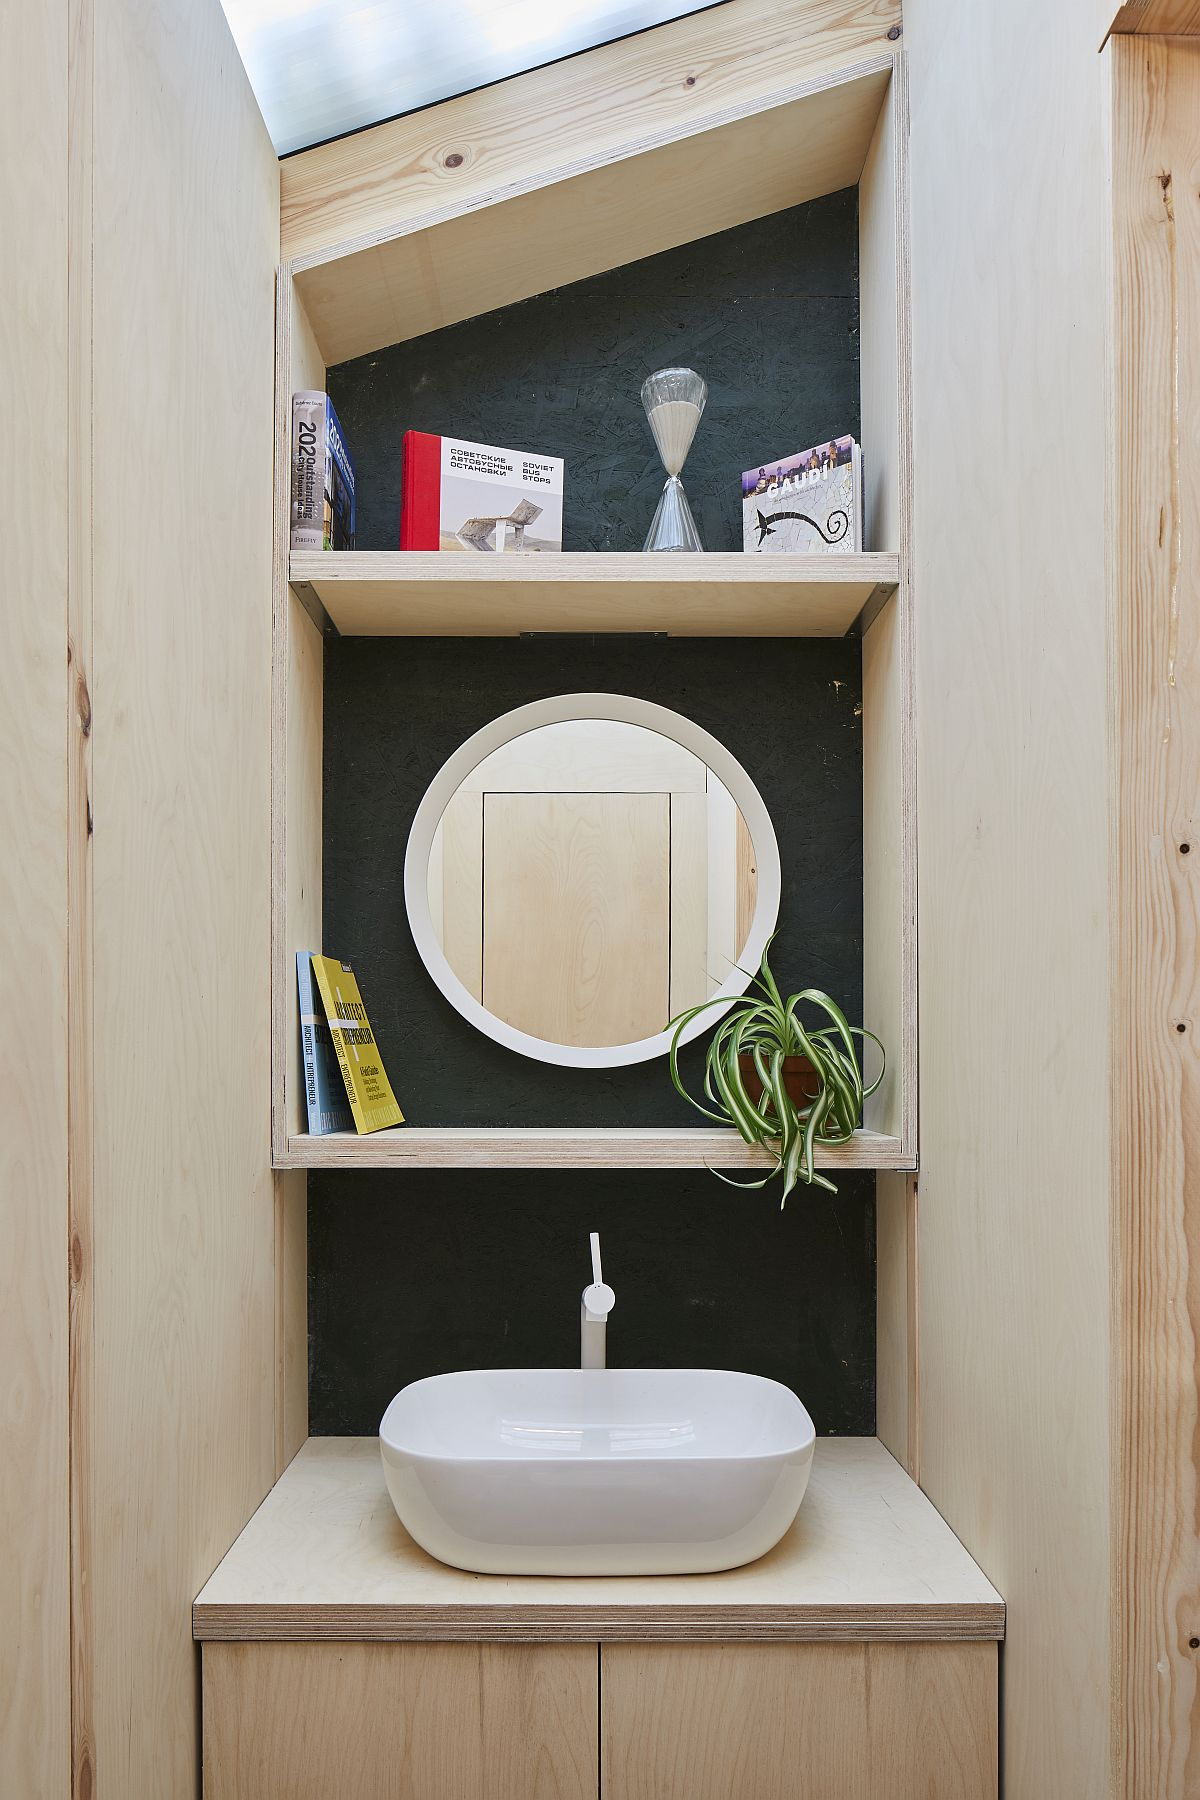 Small-bathroom-and-sink-inide-the-home-office-shed-with-limited-space-81457